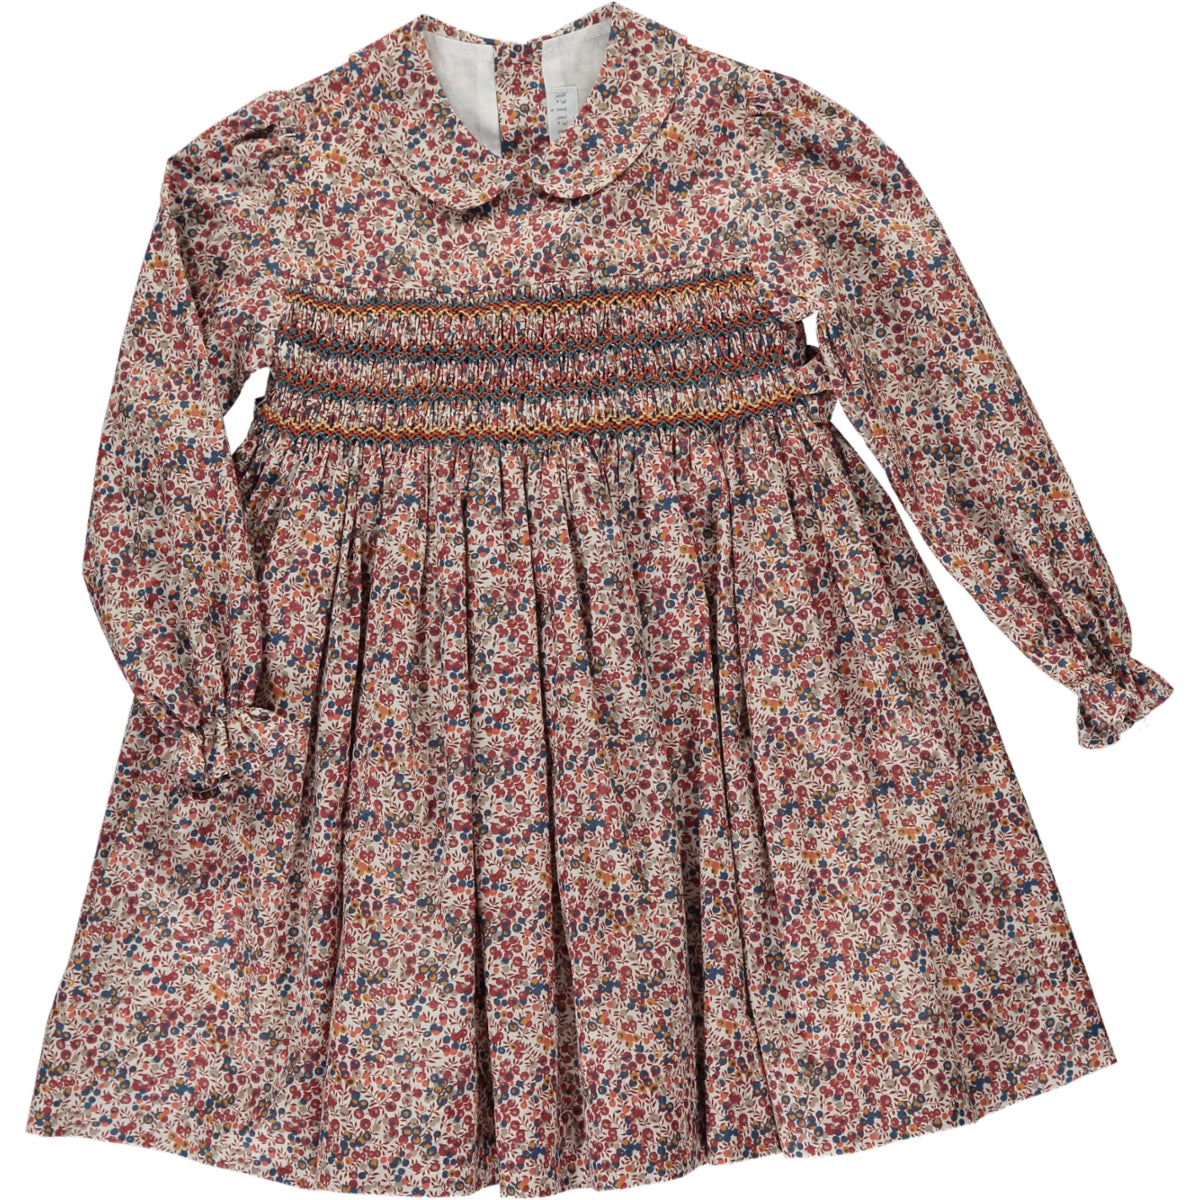 Jujube Dress Brown Floral Liberty print